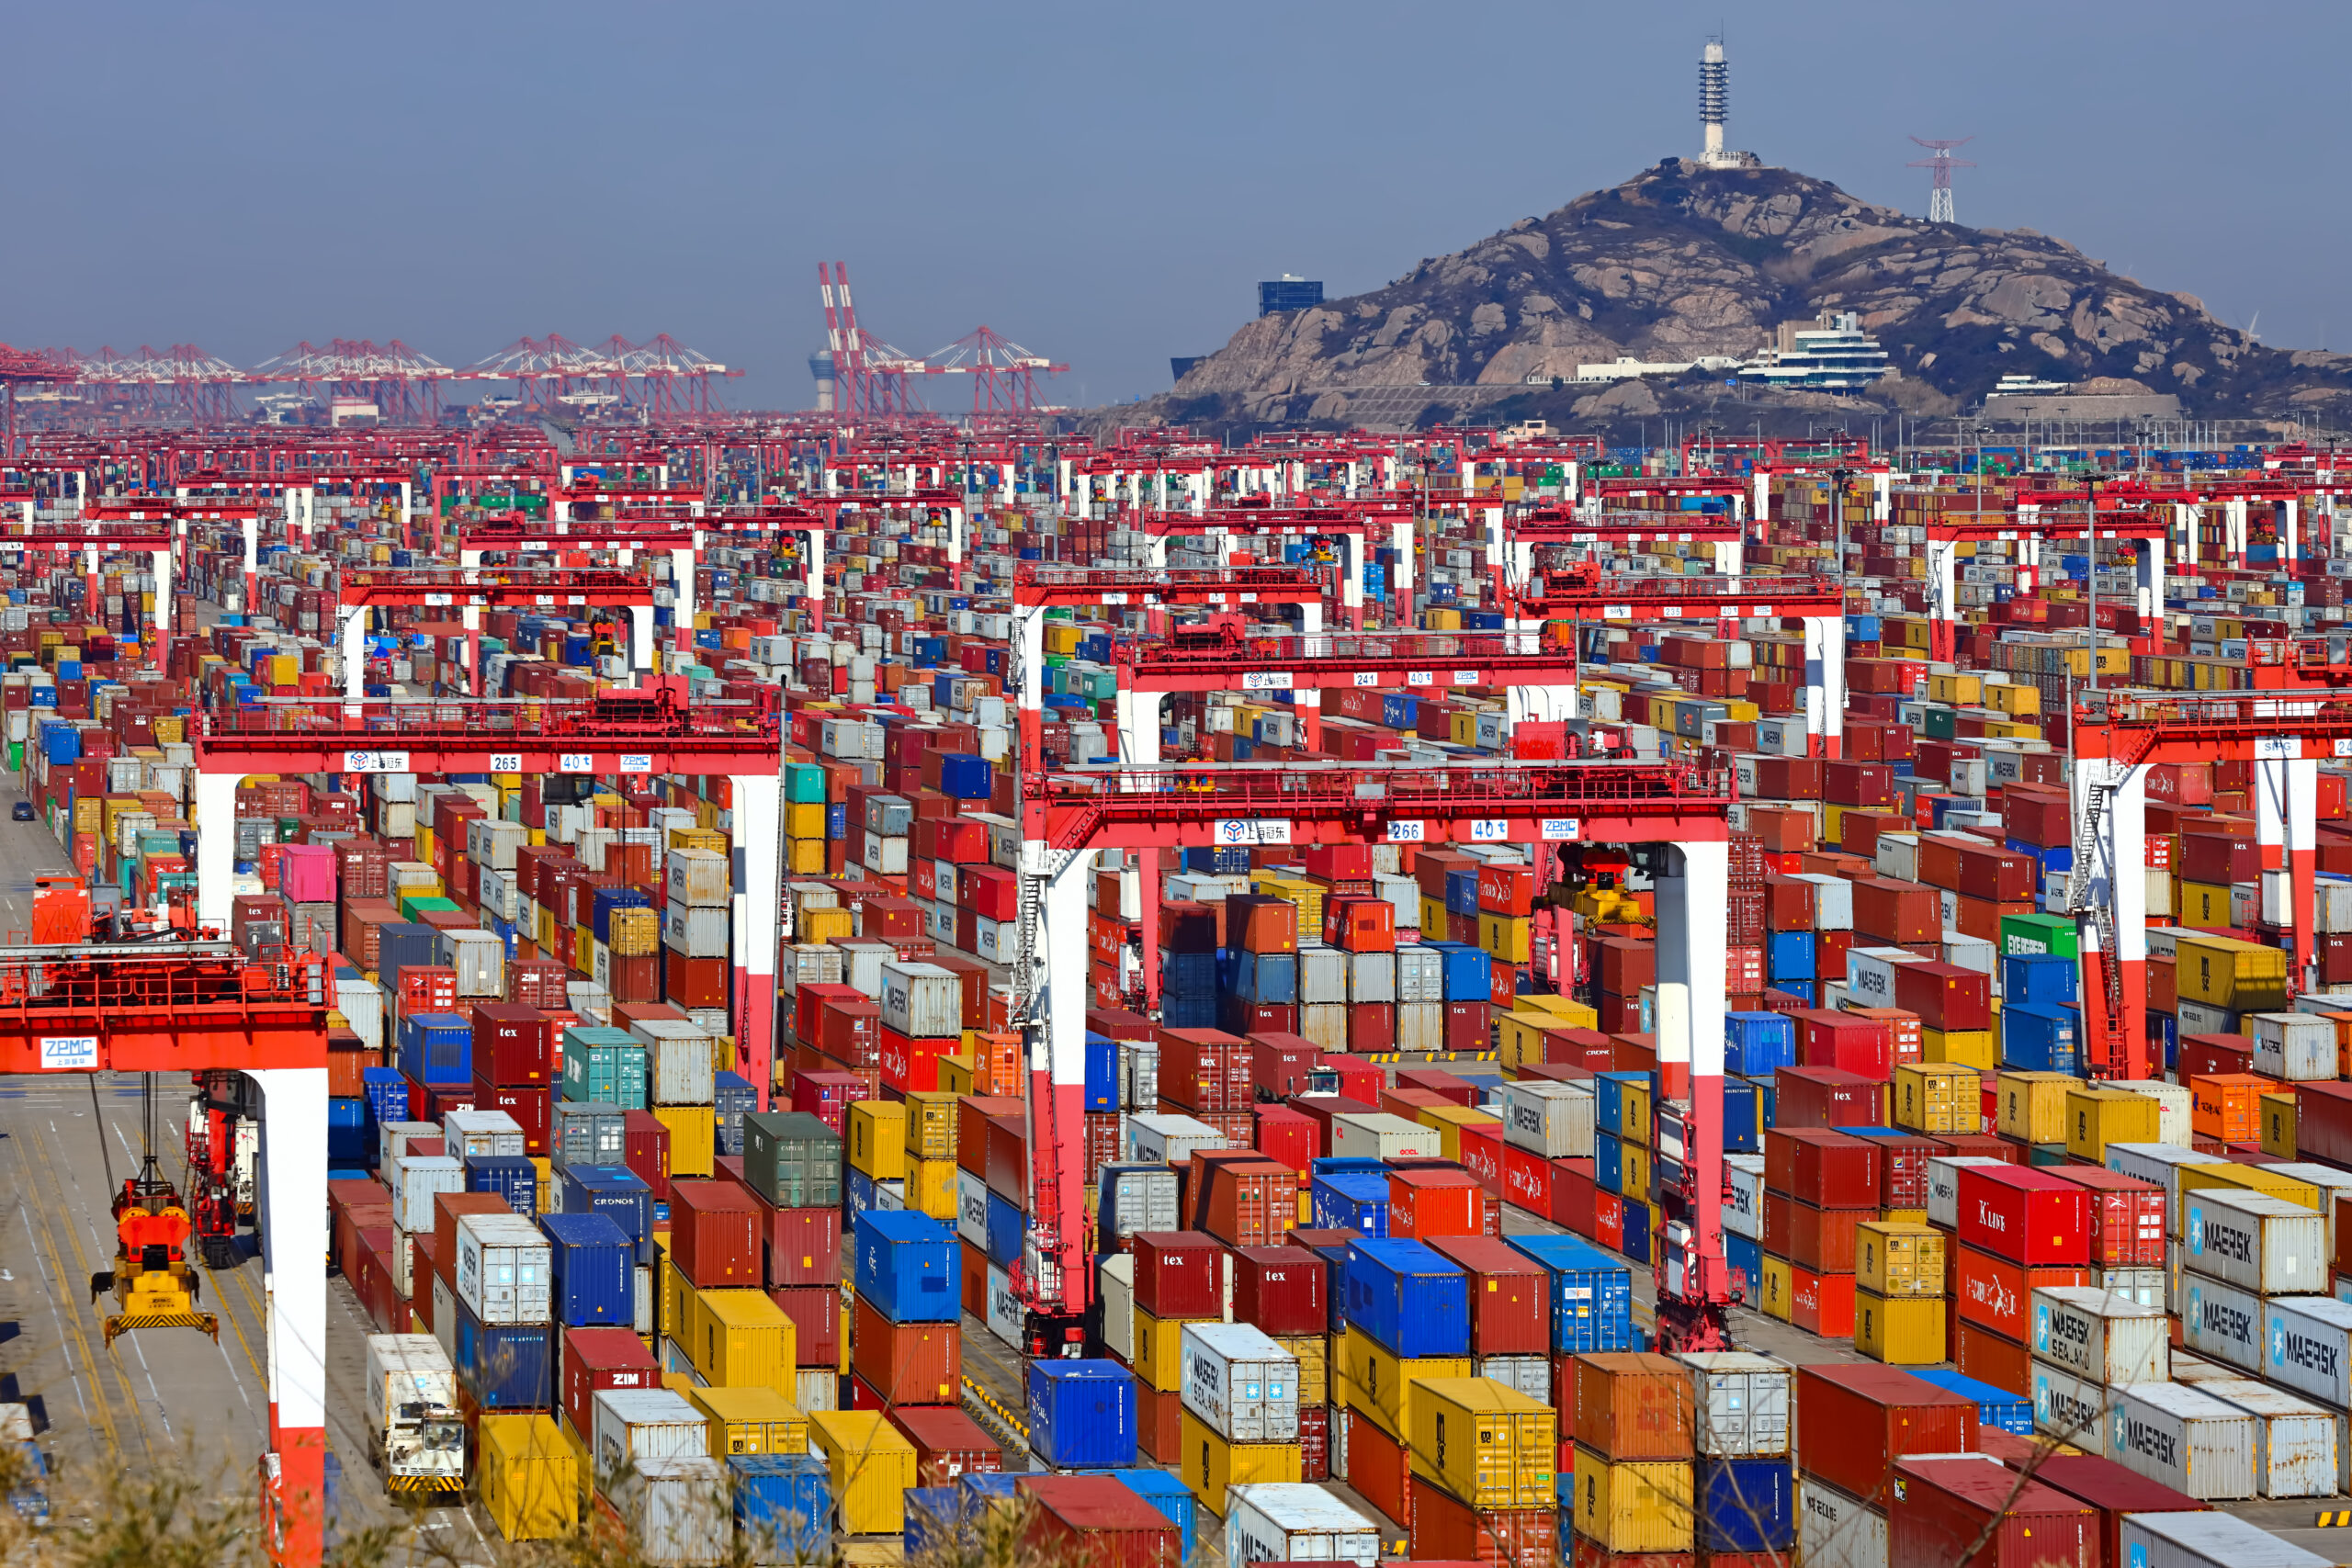 Containers in Shanghai Yangshan Deep-water Port with cranes